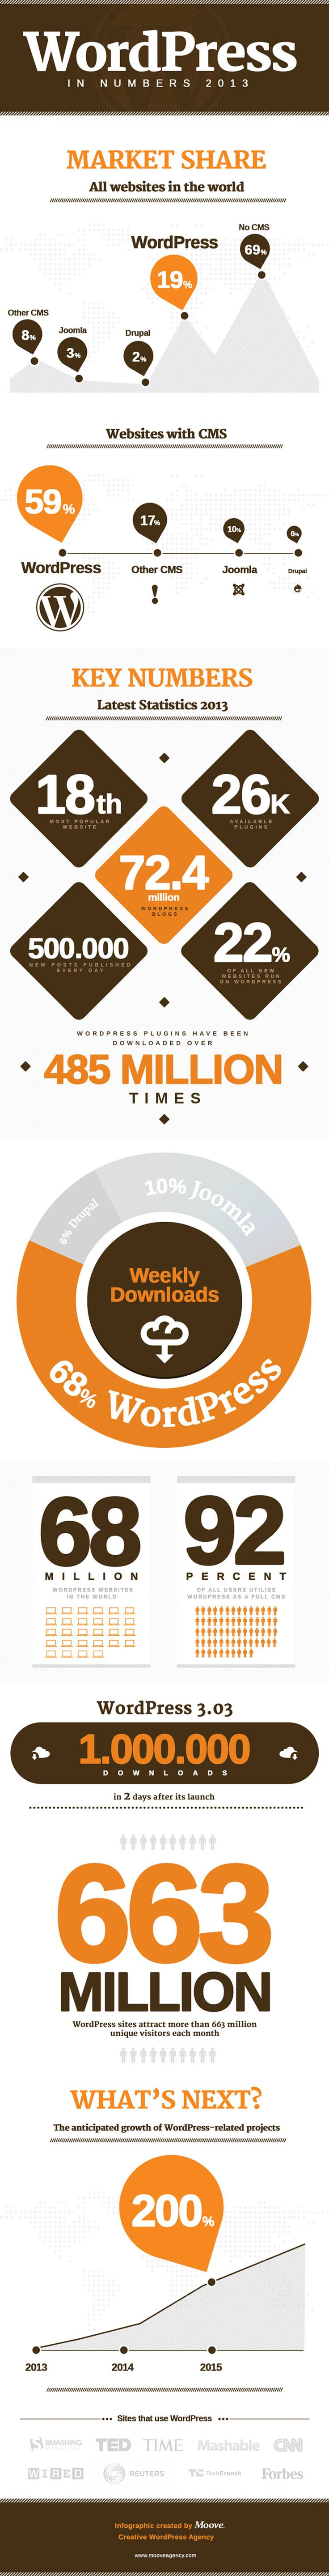 WordPress CMS in Numbers 2013 an infographic WordPress